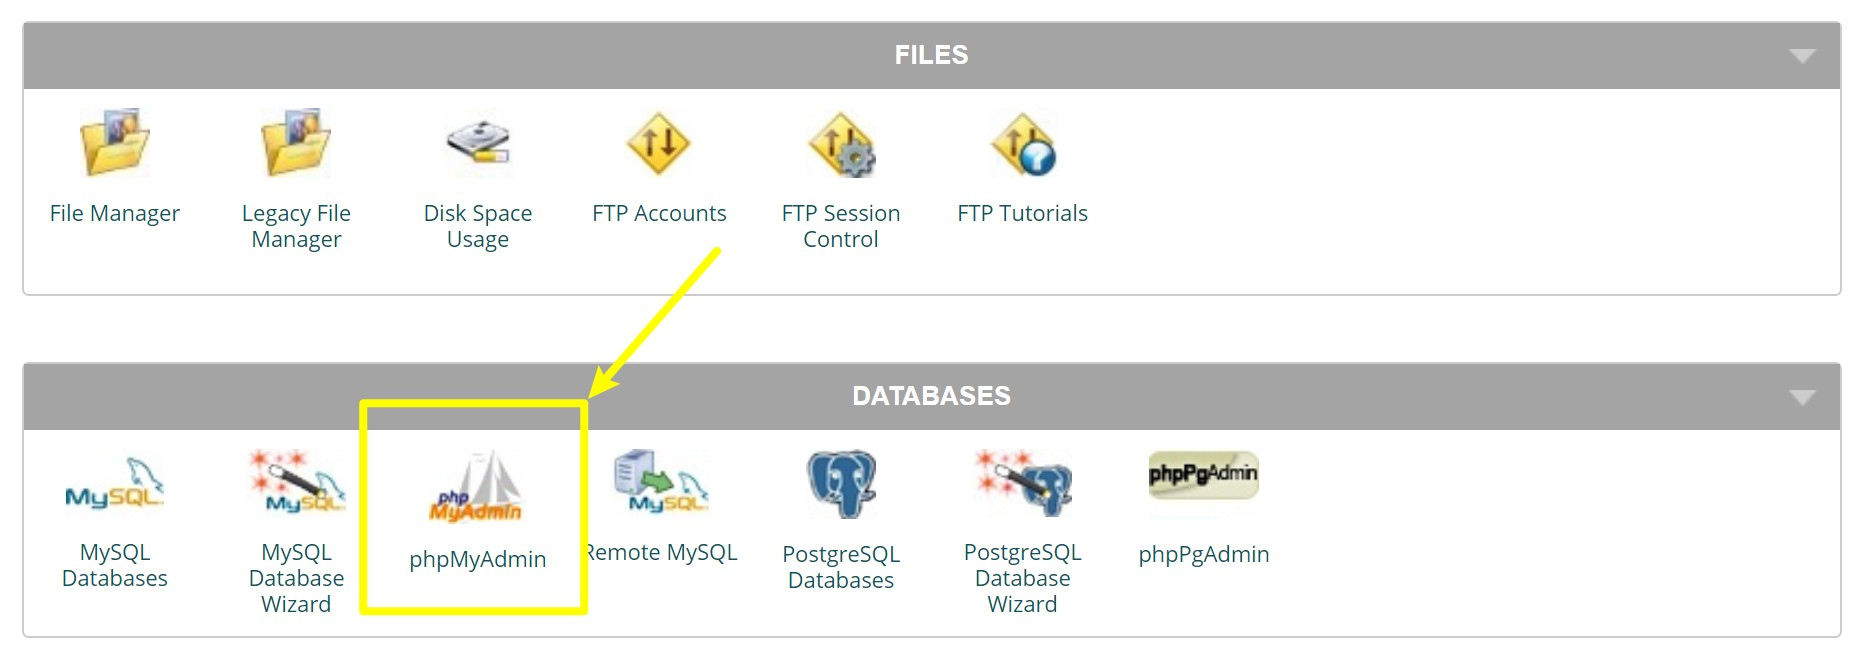 How to access phpMyAdmin